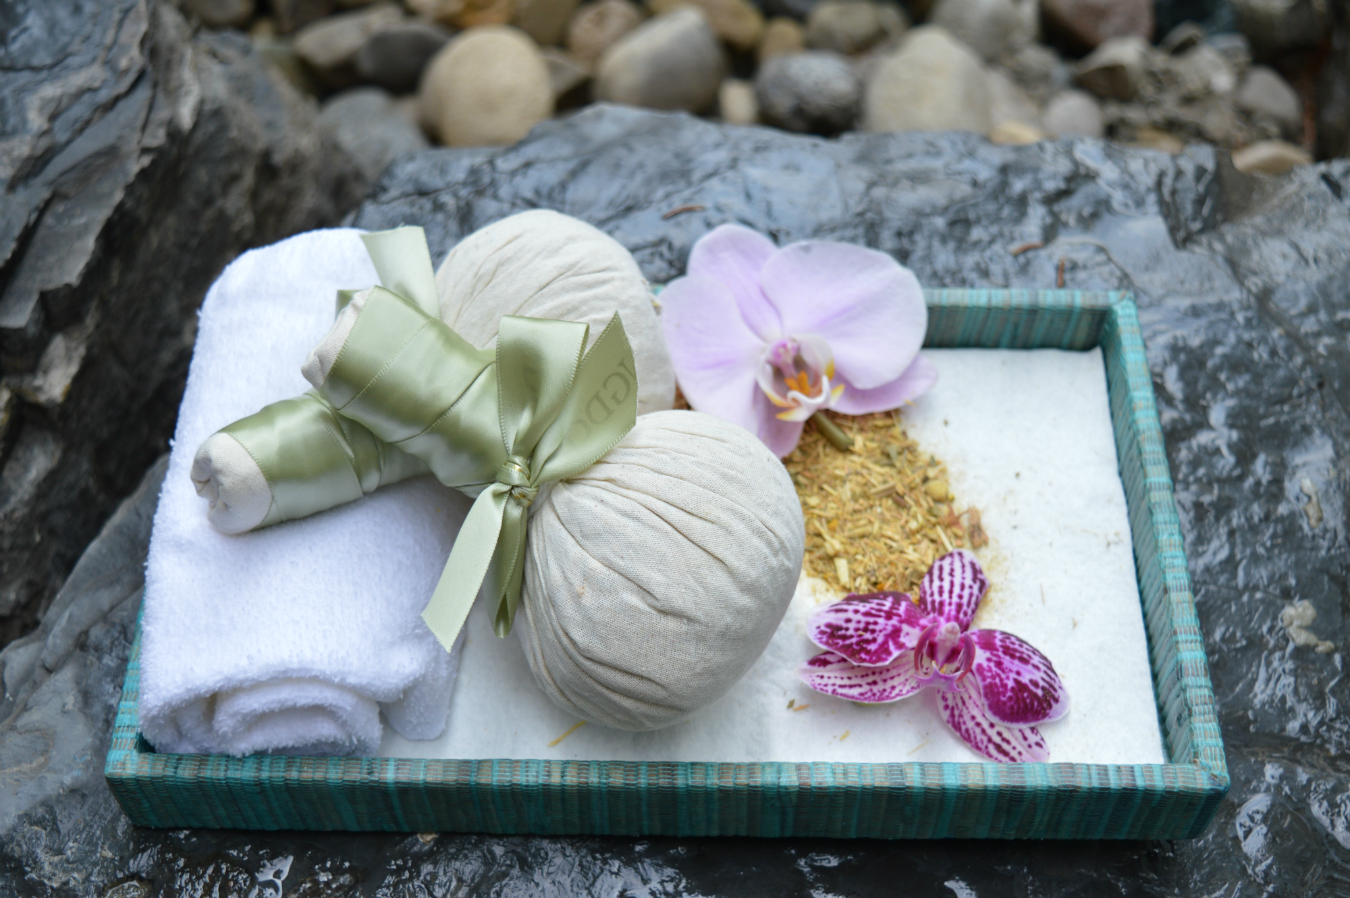 Daily Edit: Thai Stem Massage